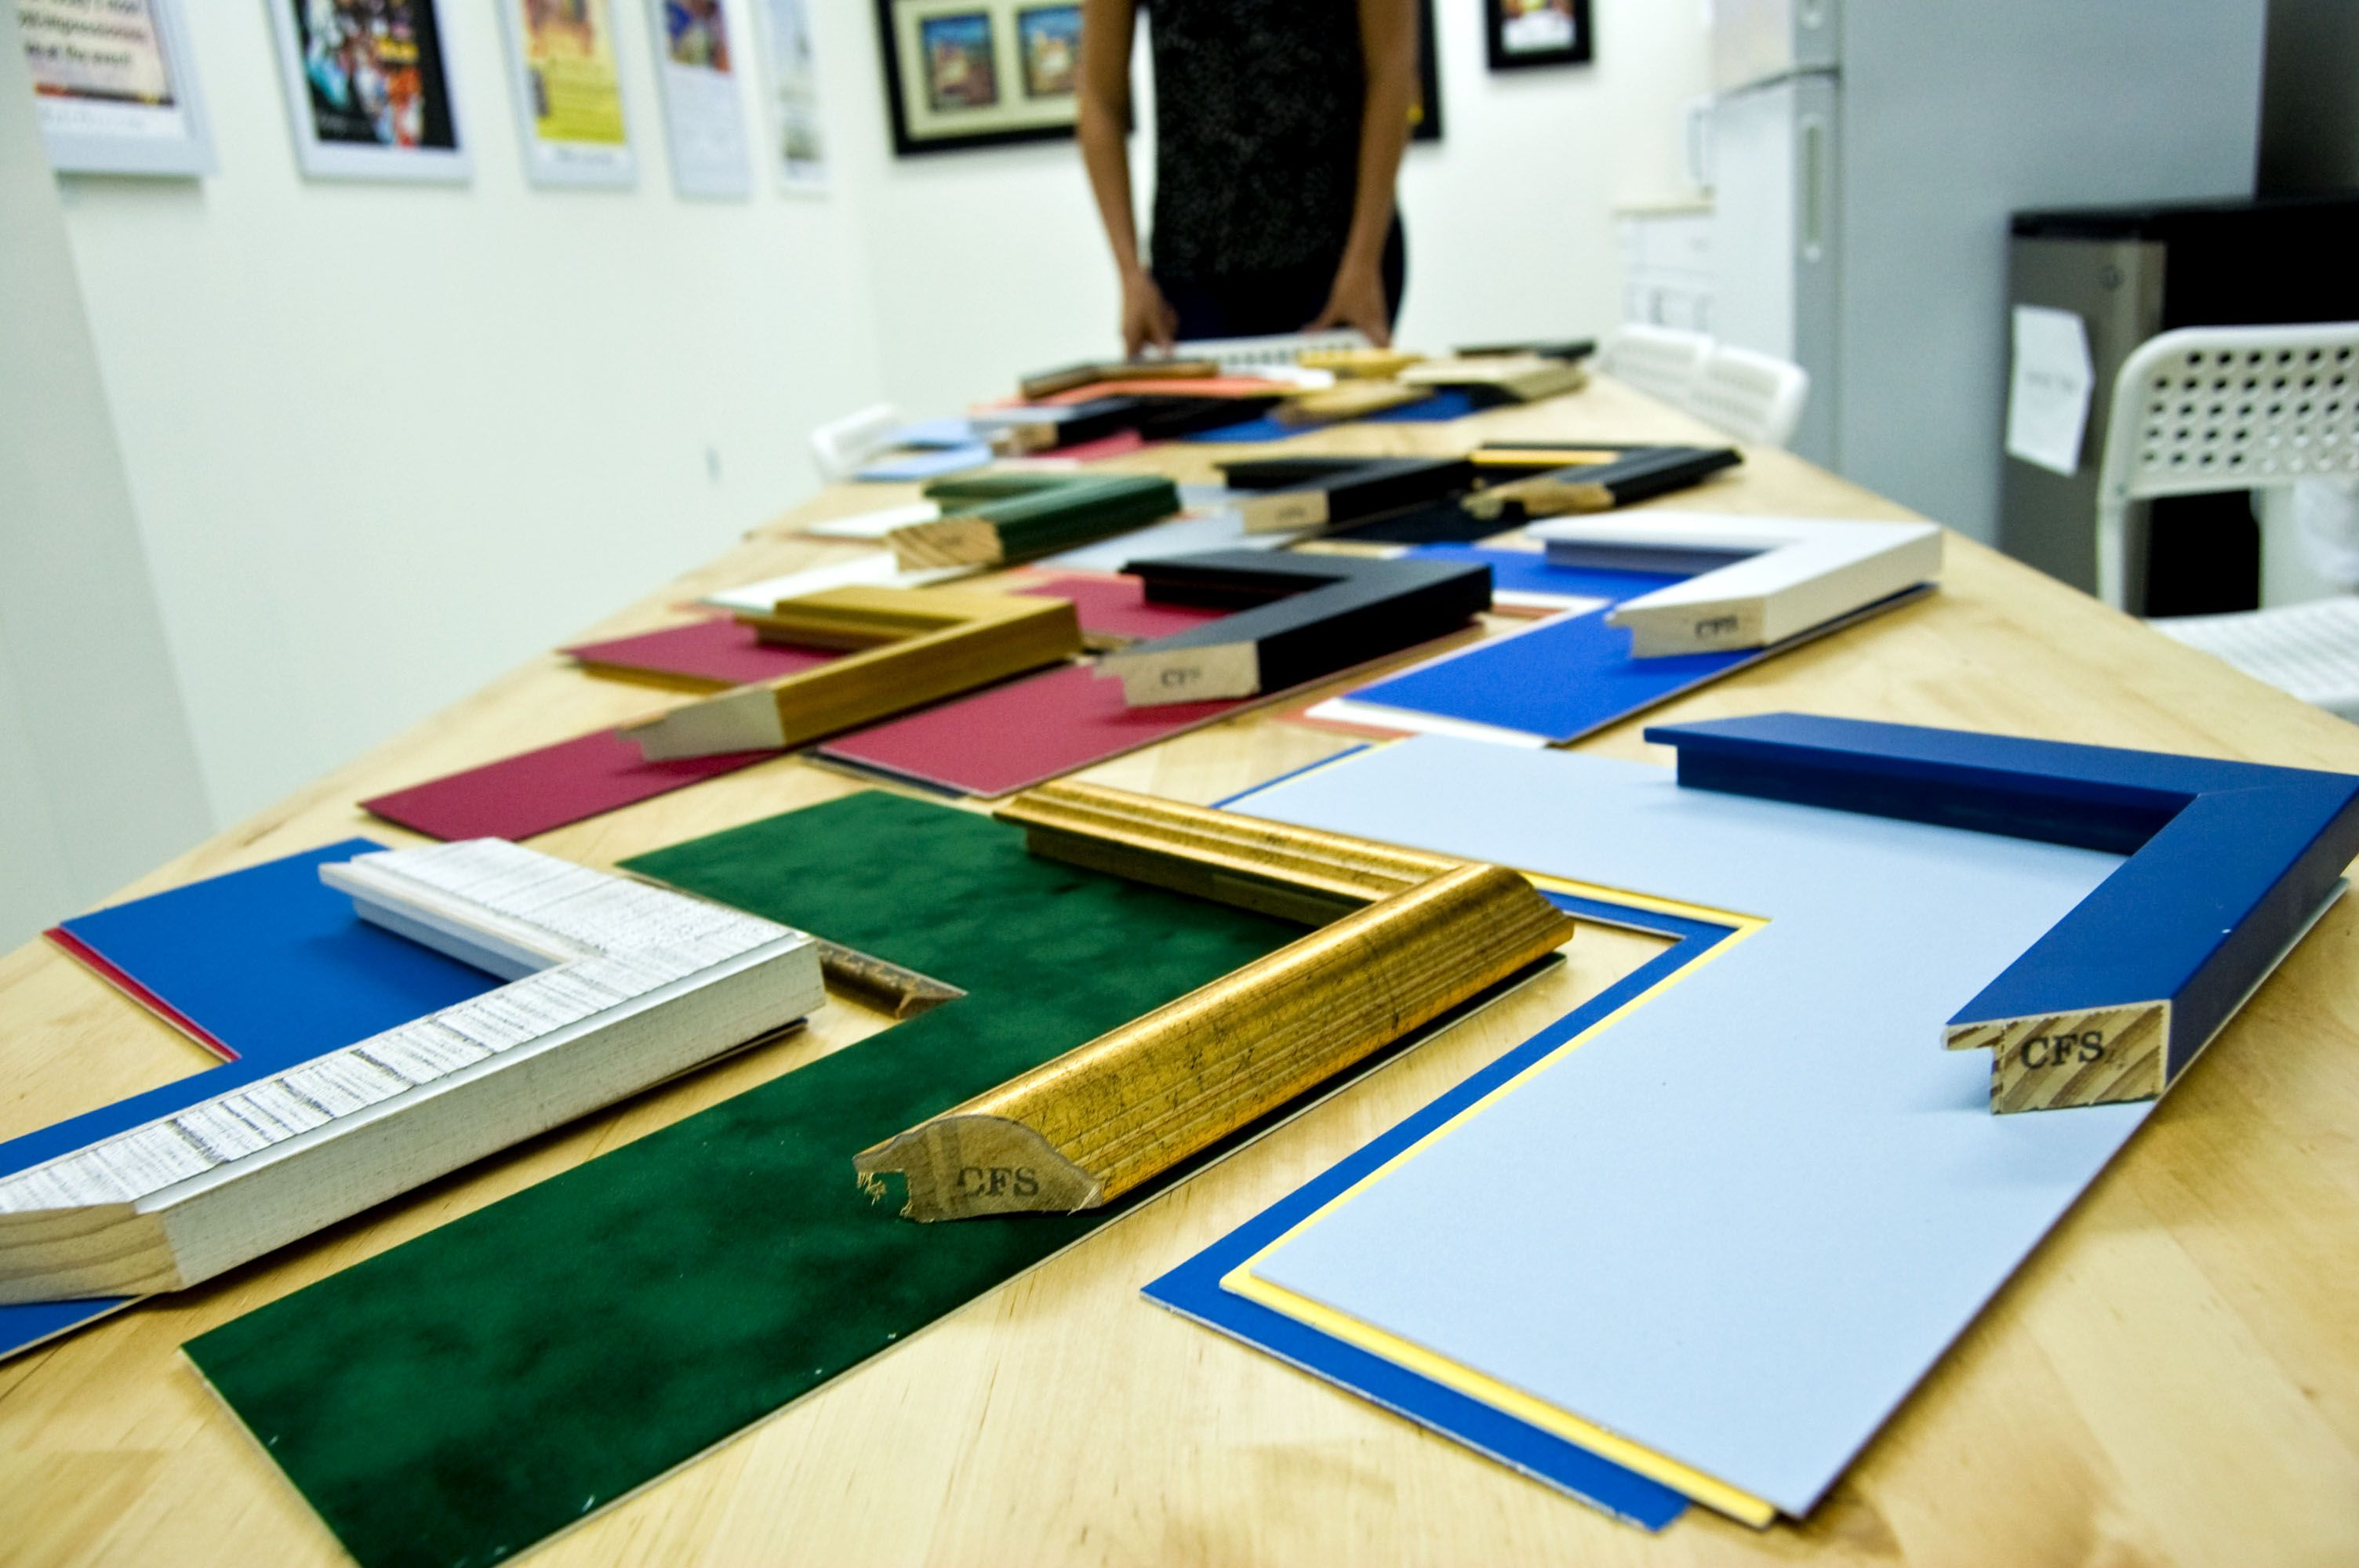 TODAY IN THE GALLERY: We\'re preparing an array of mattes and frames ...